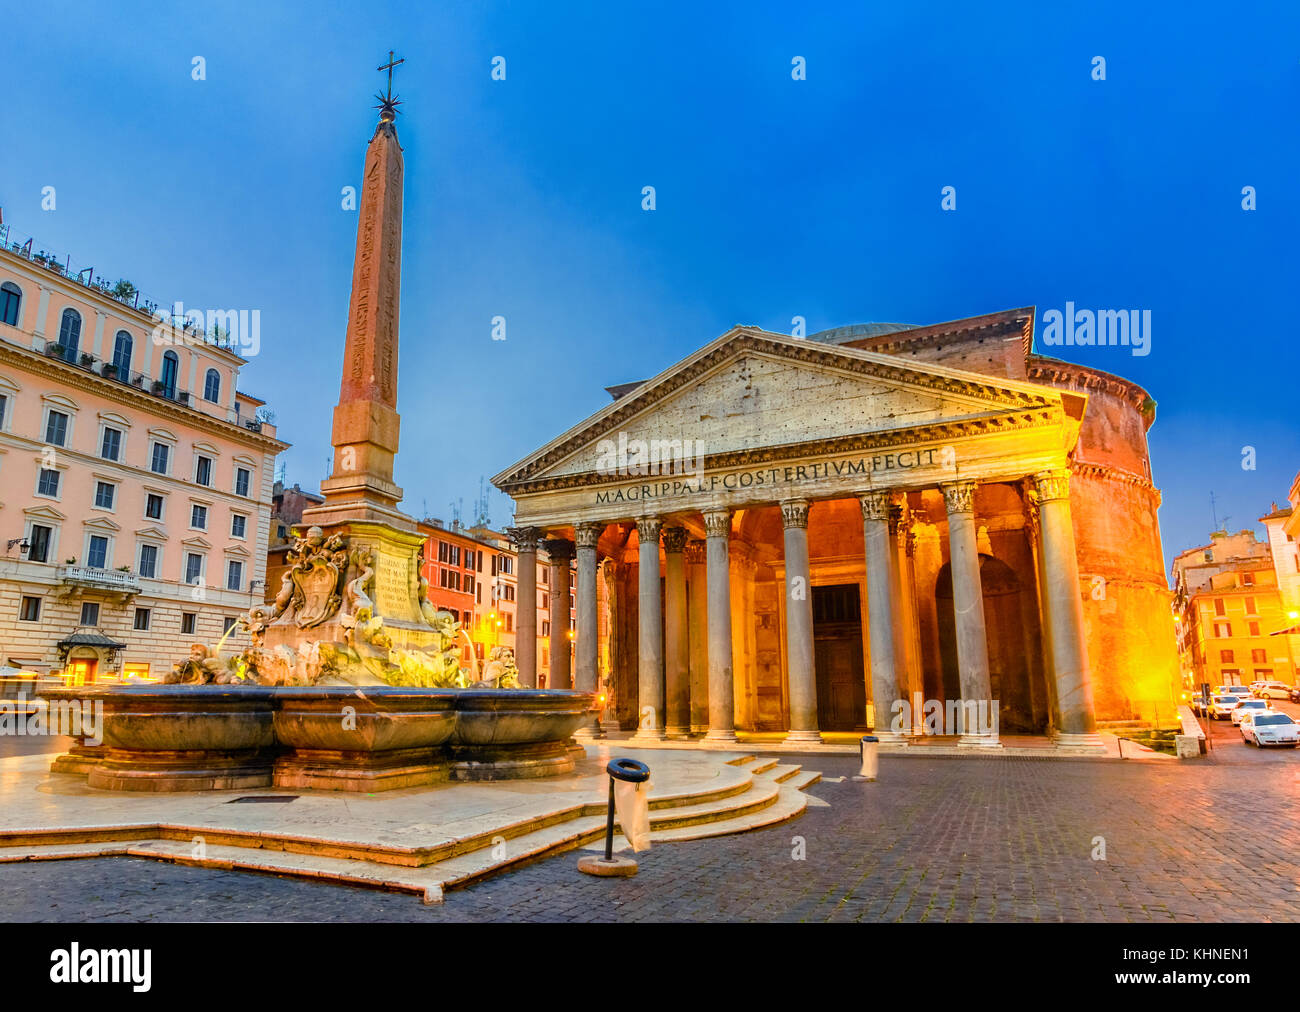 Piazza della Rotonda and Pantheon in the Morning, Rome, Italy - Stock Image